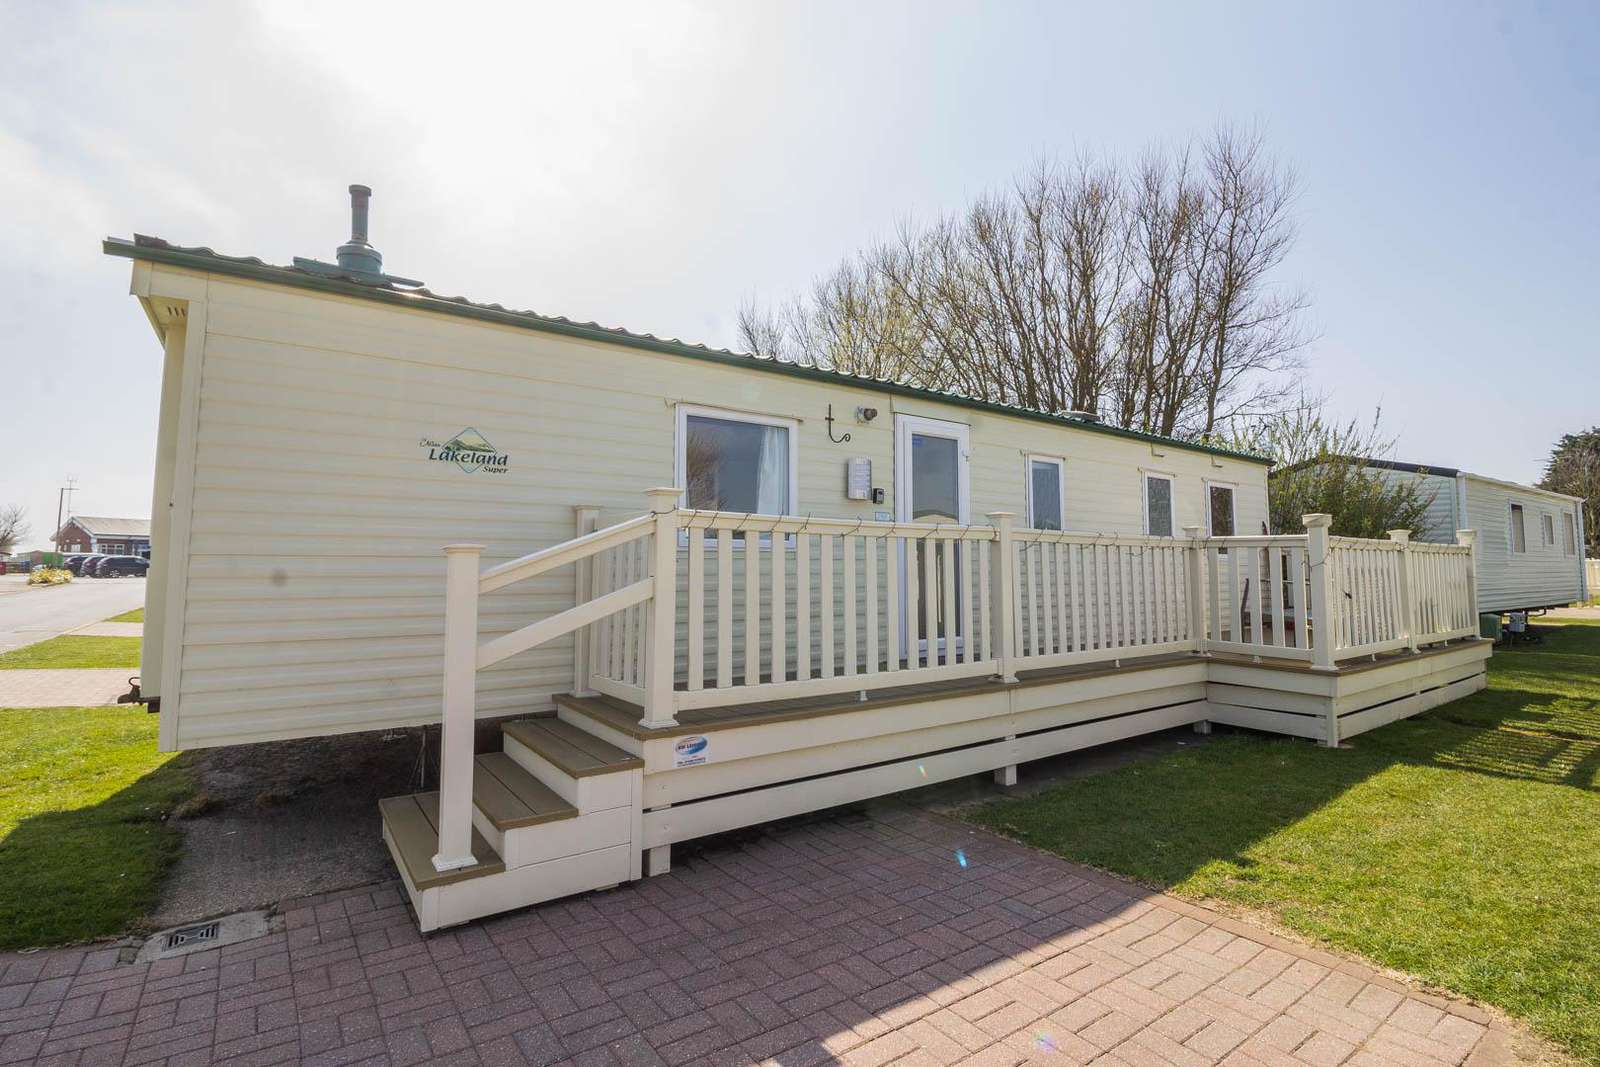 41350NF – North Field area, 3 bed, 8 berth caravan close park amenities. Ruby rated. - property